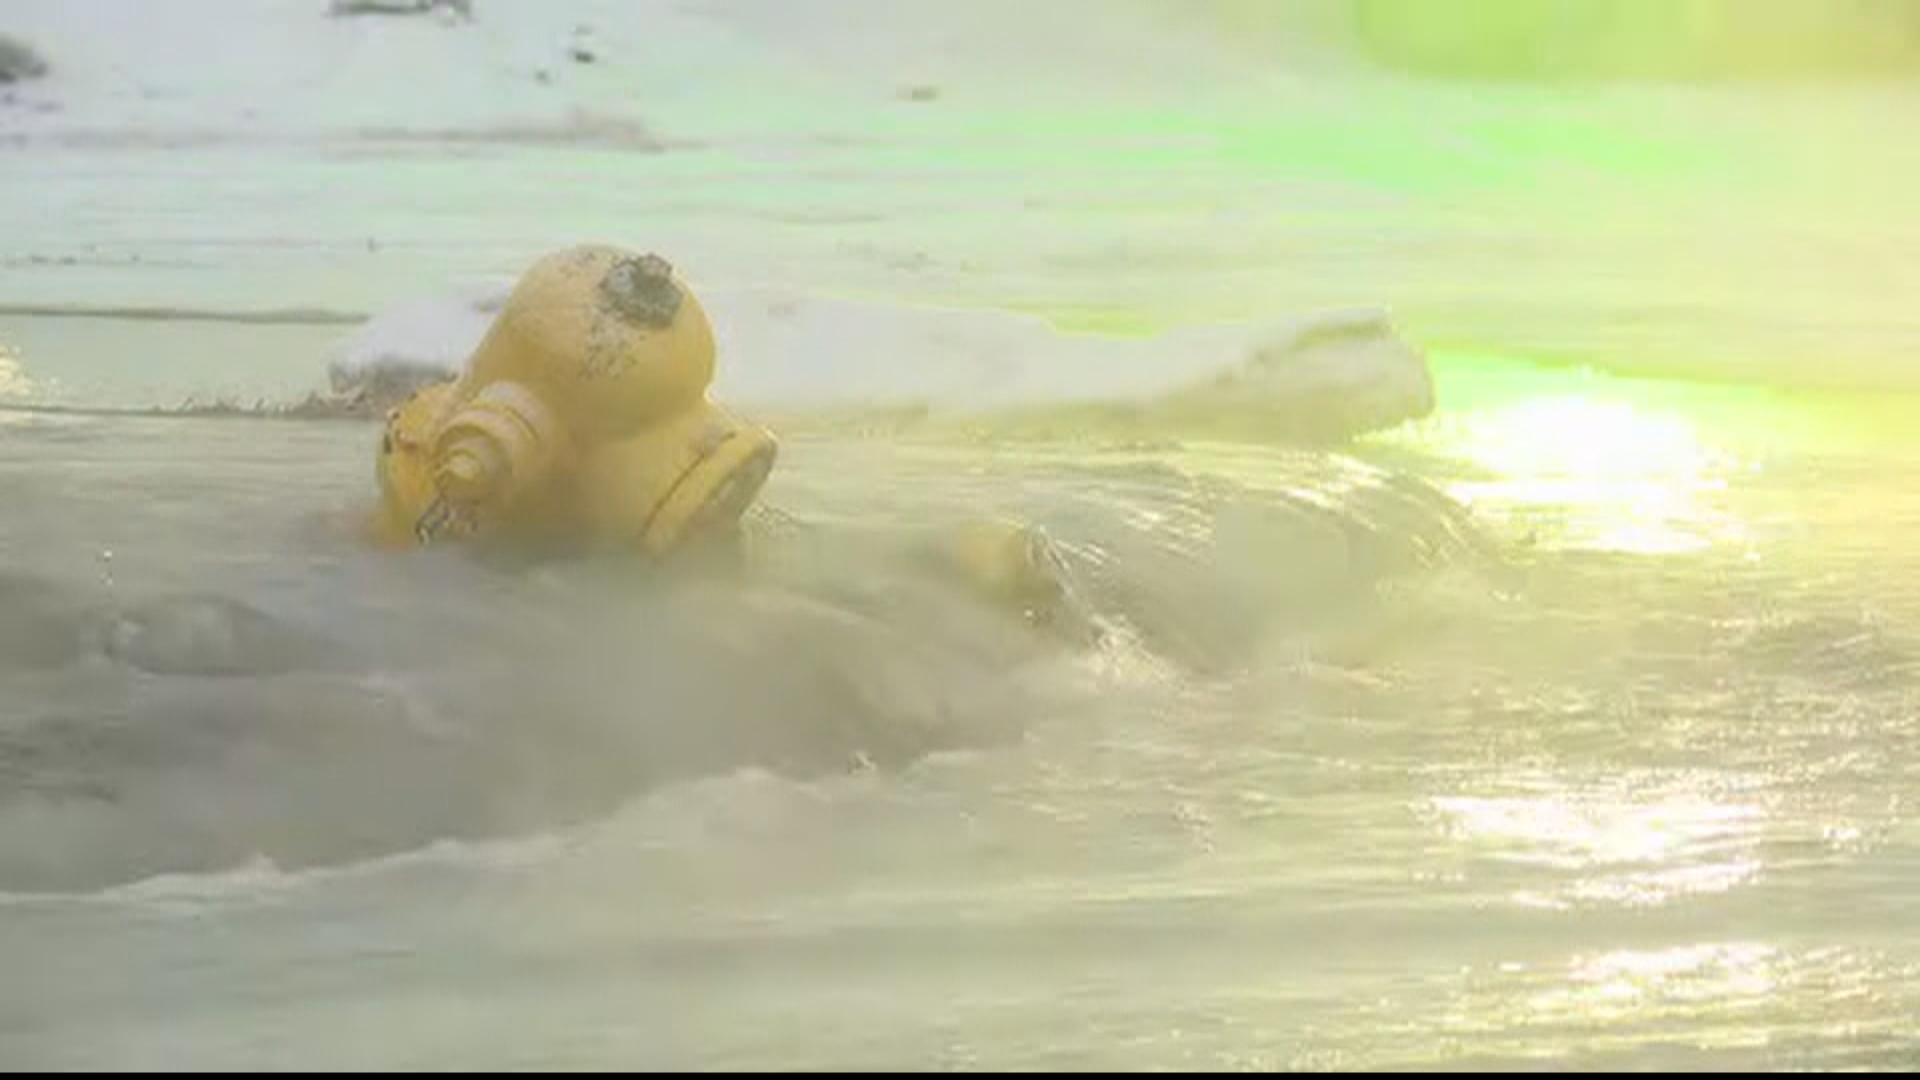 A fire hydrant in Burton has been knocked over and spraying water across a roadway. (WEYI/WSMH)